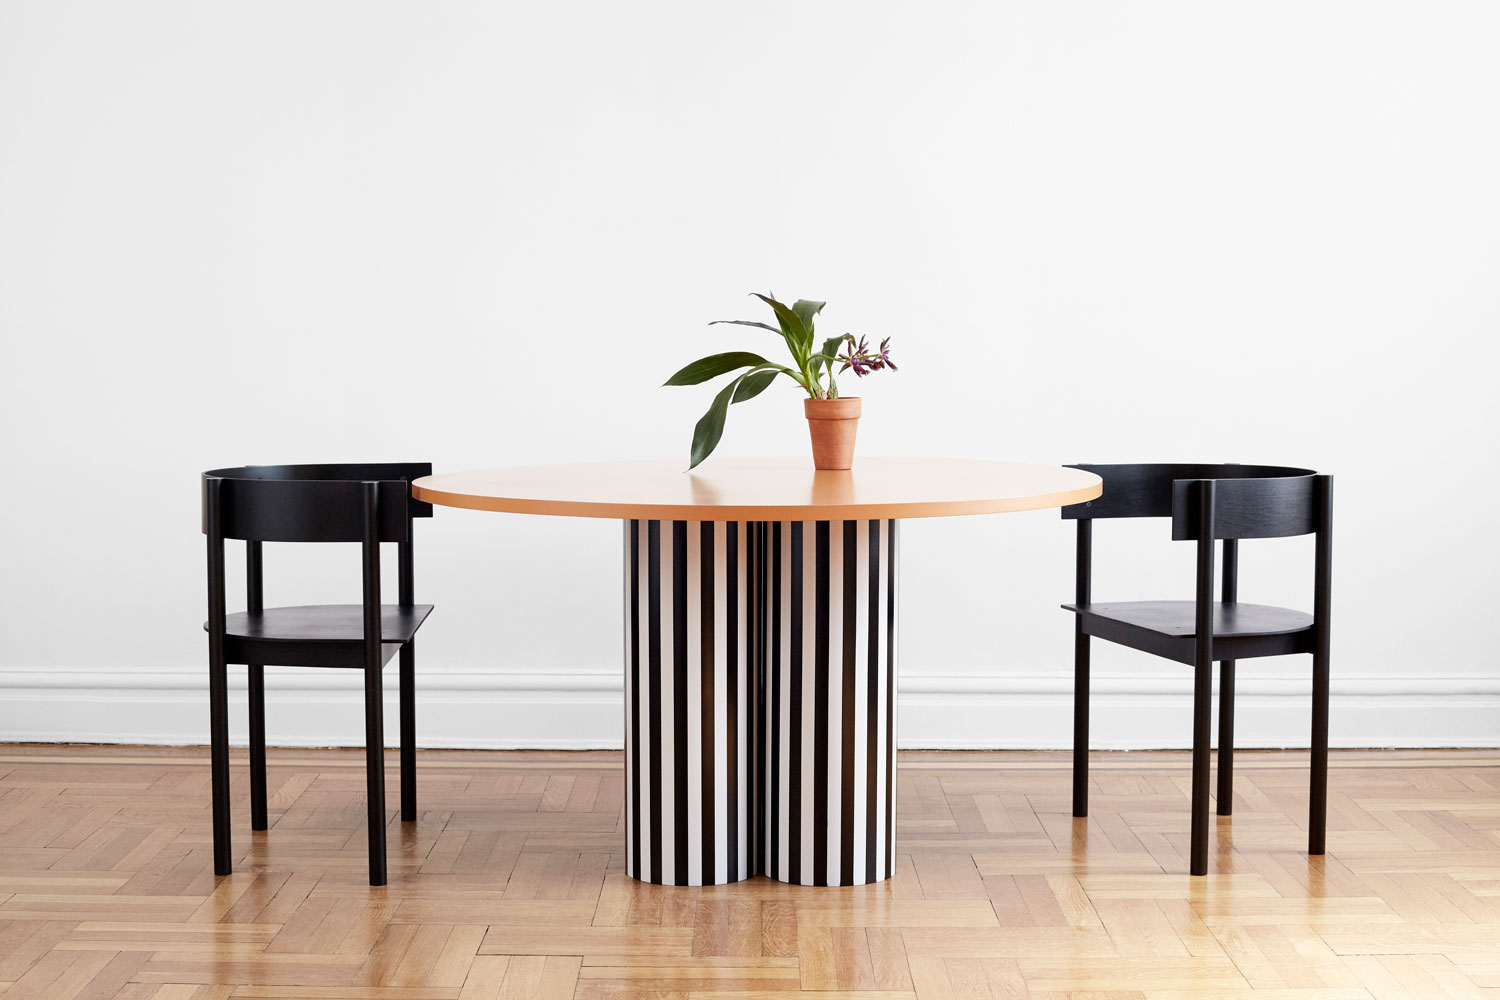 MM 2015 Slon Table by Ana Kras. Typecast Chair by Philippe Malouin | Yellowtrace